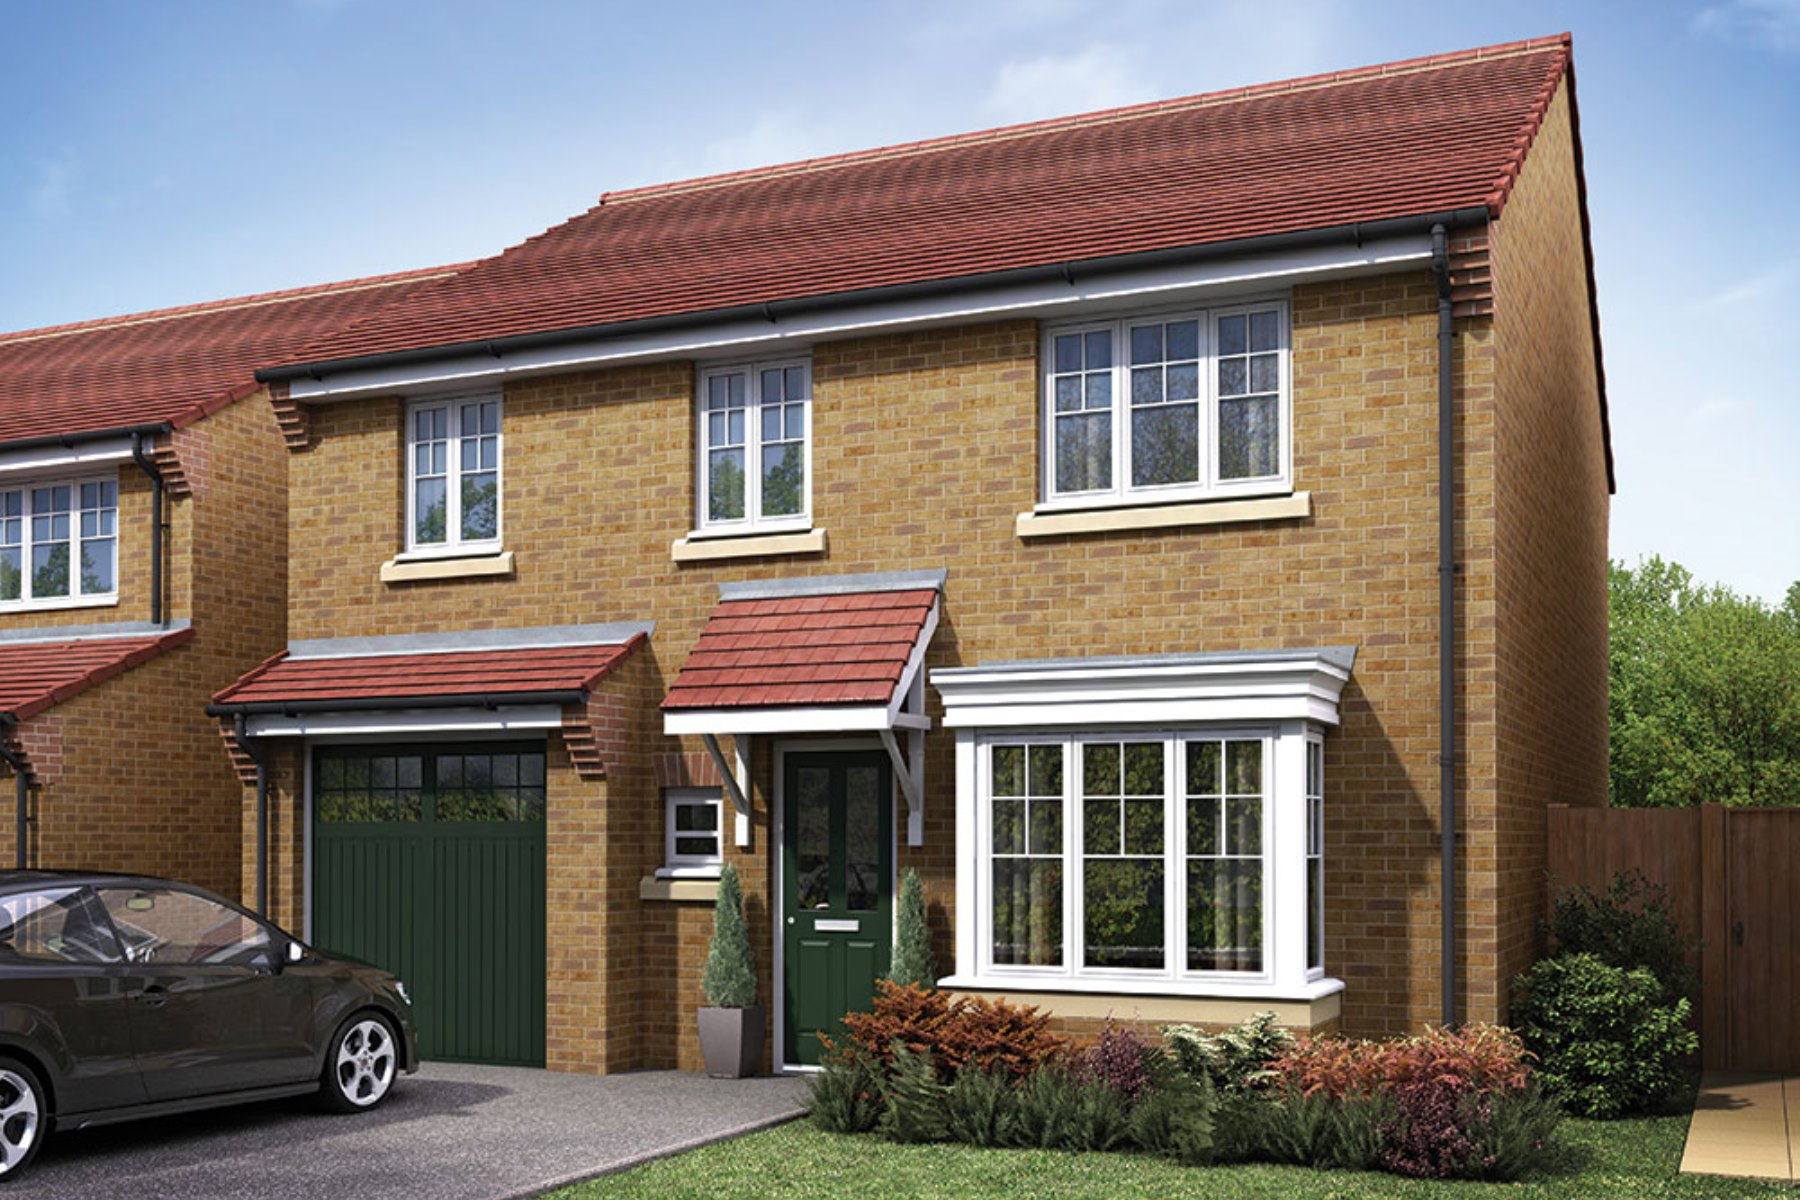 Taylor Wimpey - Exterior - The Downham - 4 bedroom new home